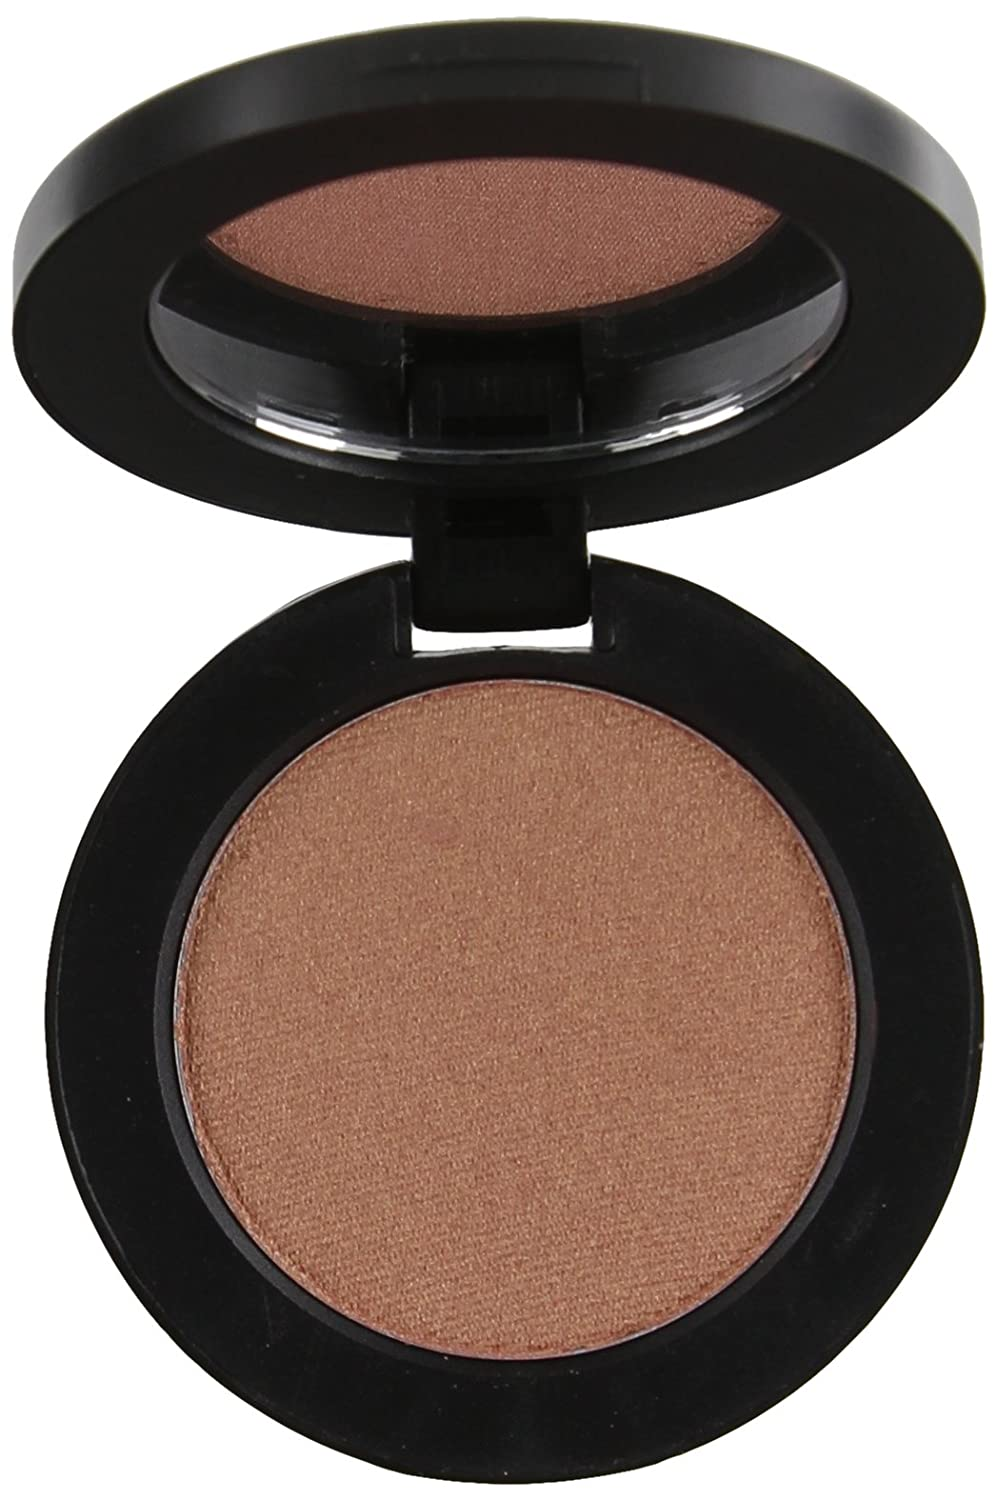 Youngblood Pressed Mineral Blush, Blossom, 3gm 08005/YB